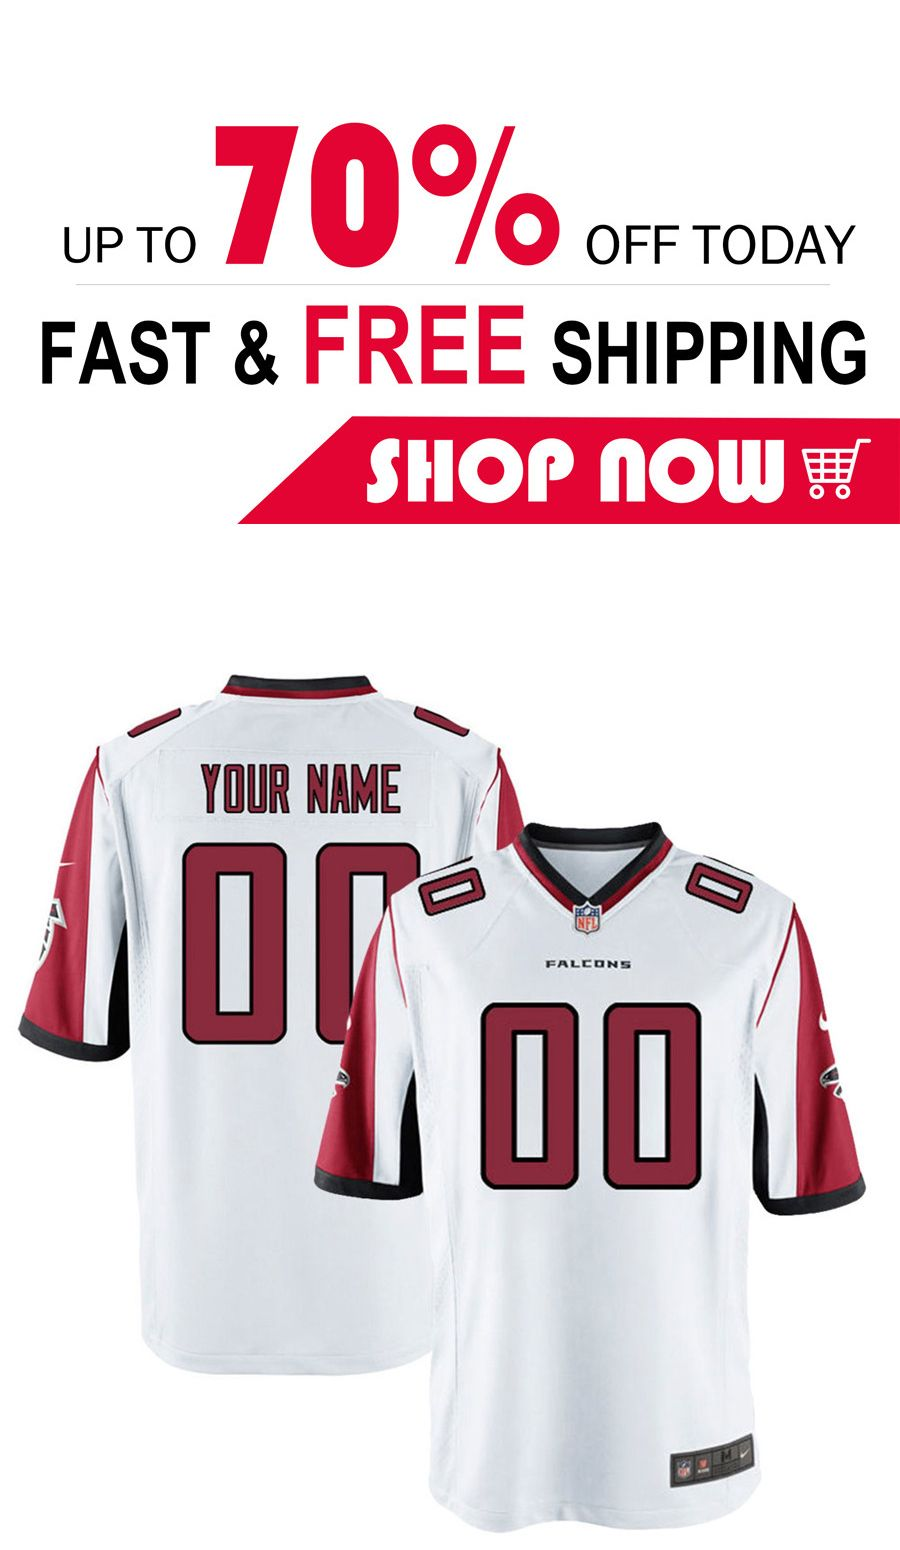 67ebf8a85 2019 的 Atlanta Falcons custom football Game Jersey 主题 | NFL Atlanta Falcons  Jersey | Nfl jerseys、Custom football 和 NFL